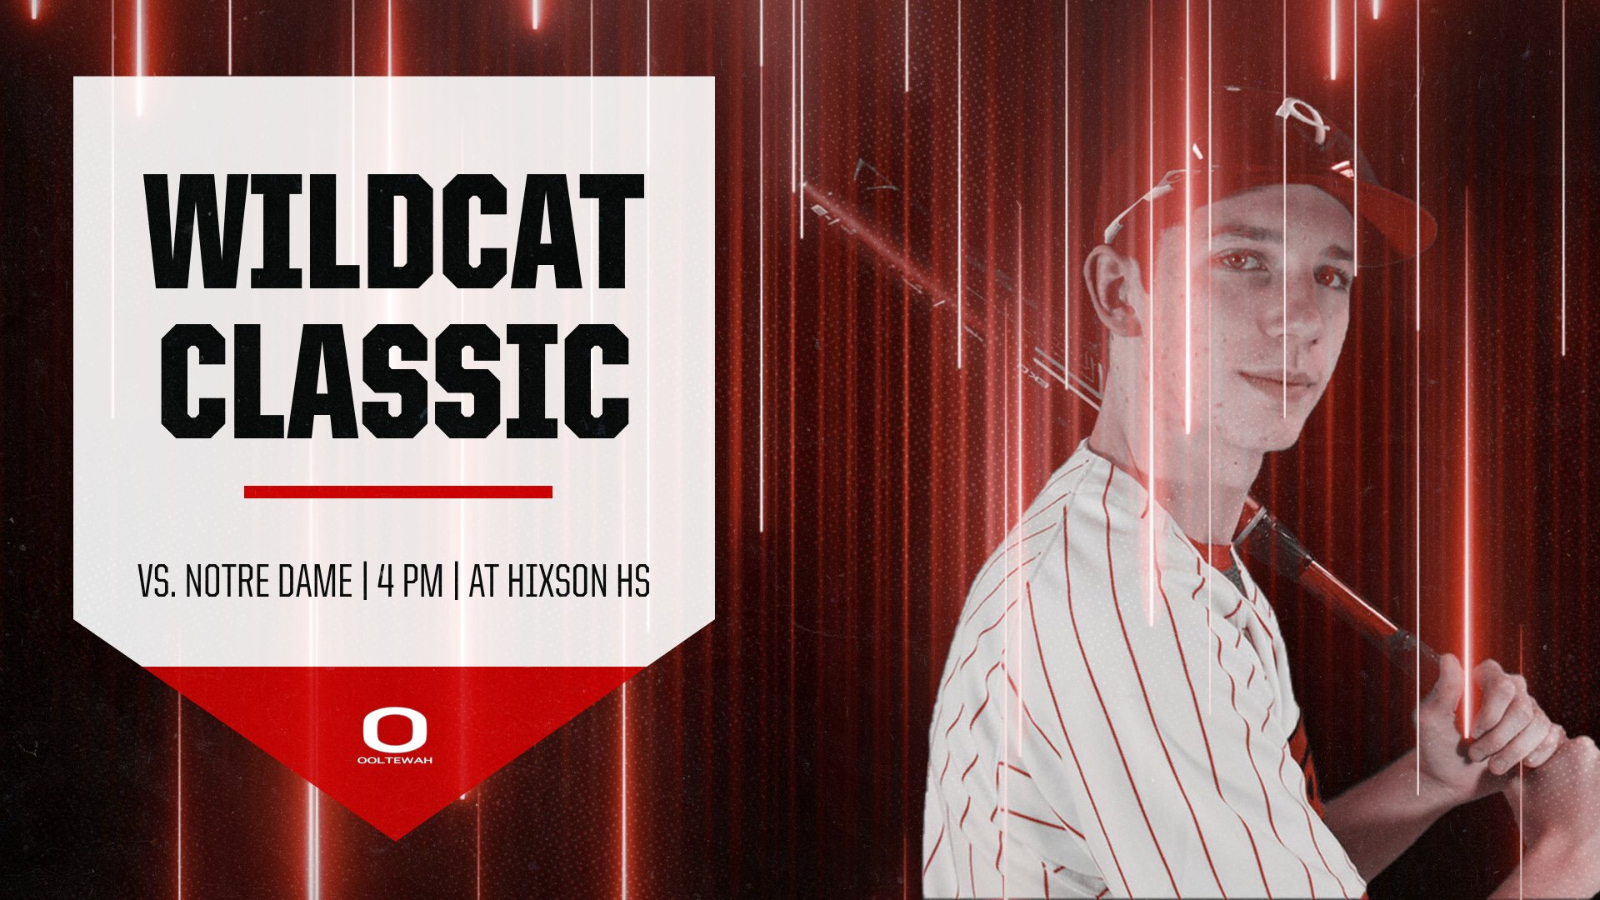 OHS Baseball to play Game One of Wildcat Classic